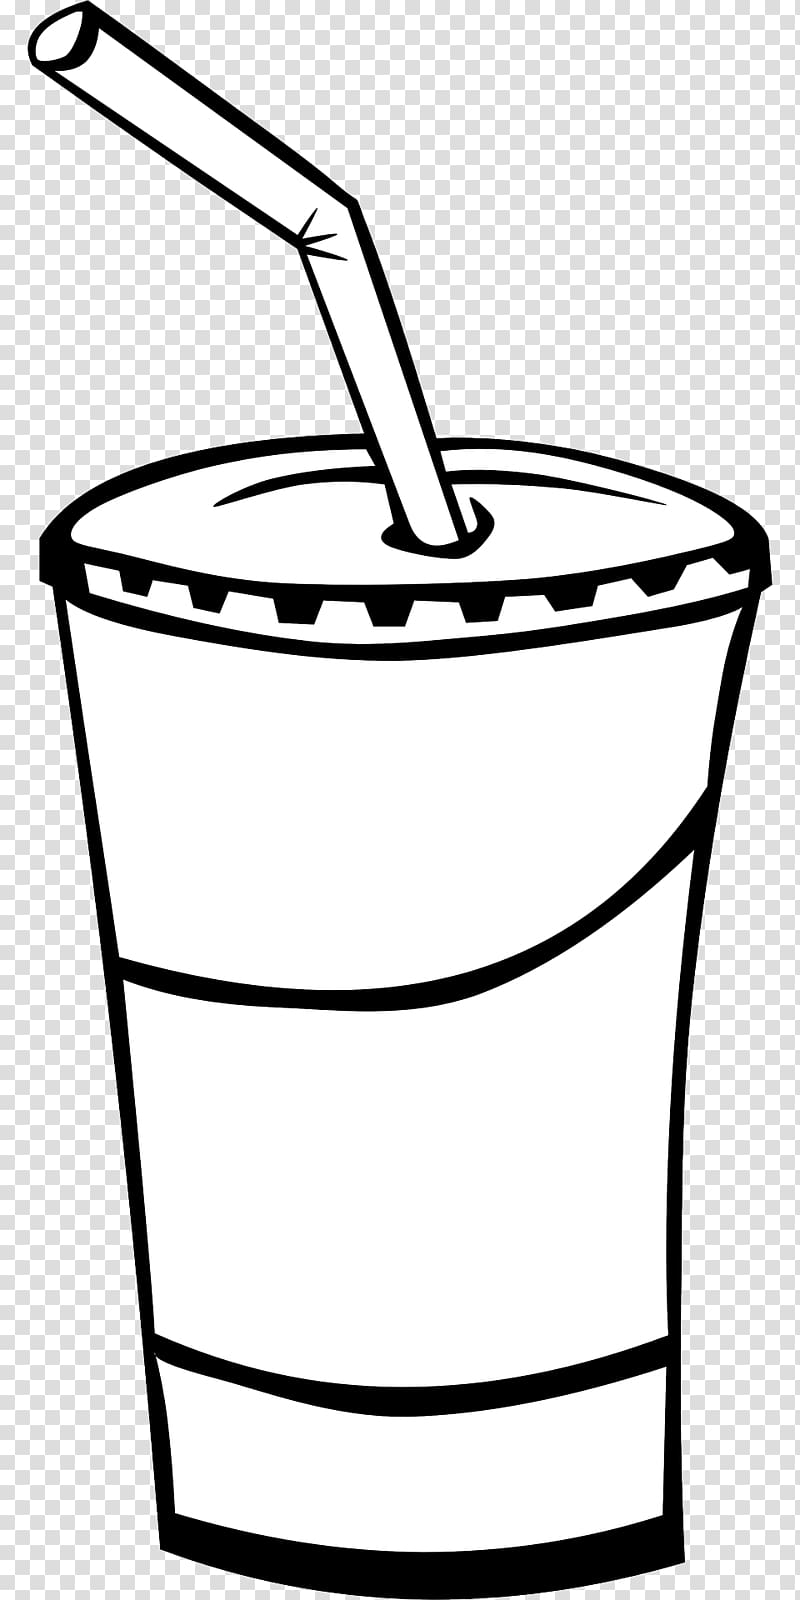 Fast food clipart drink. Fizzy drinks coca cola